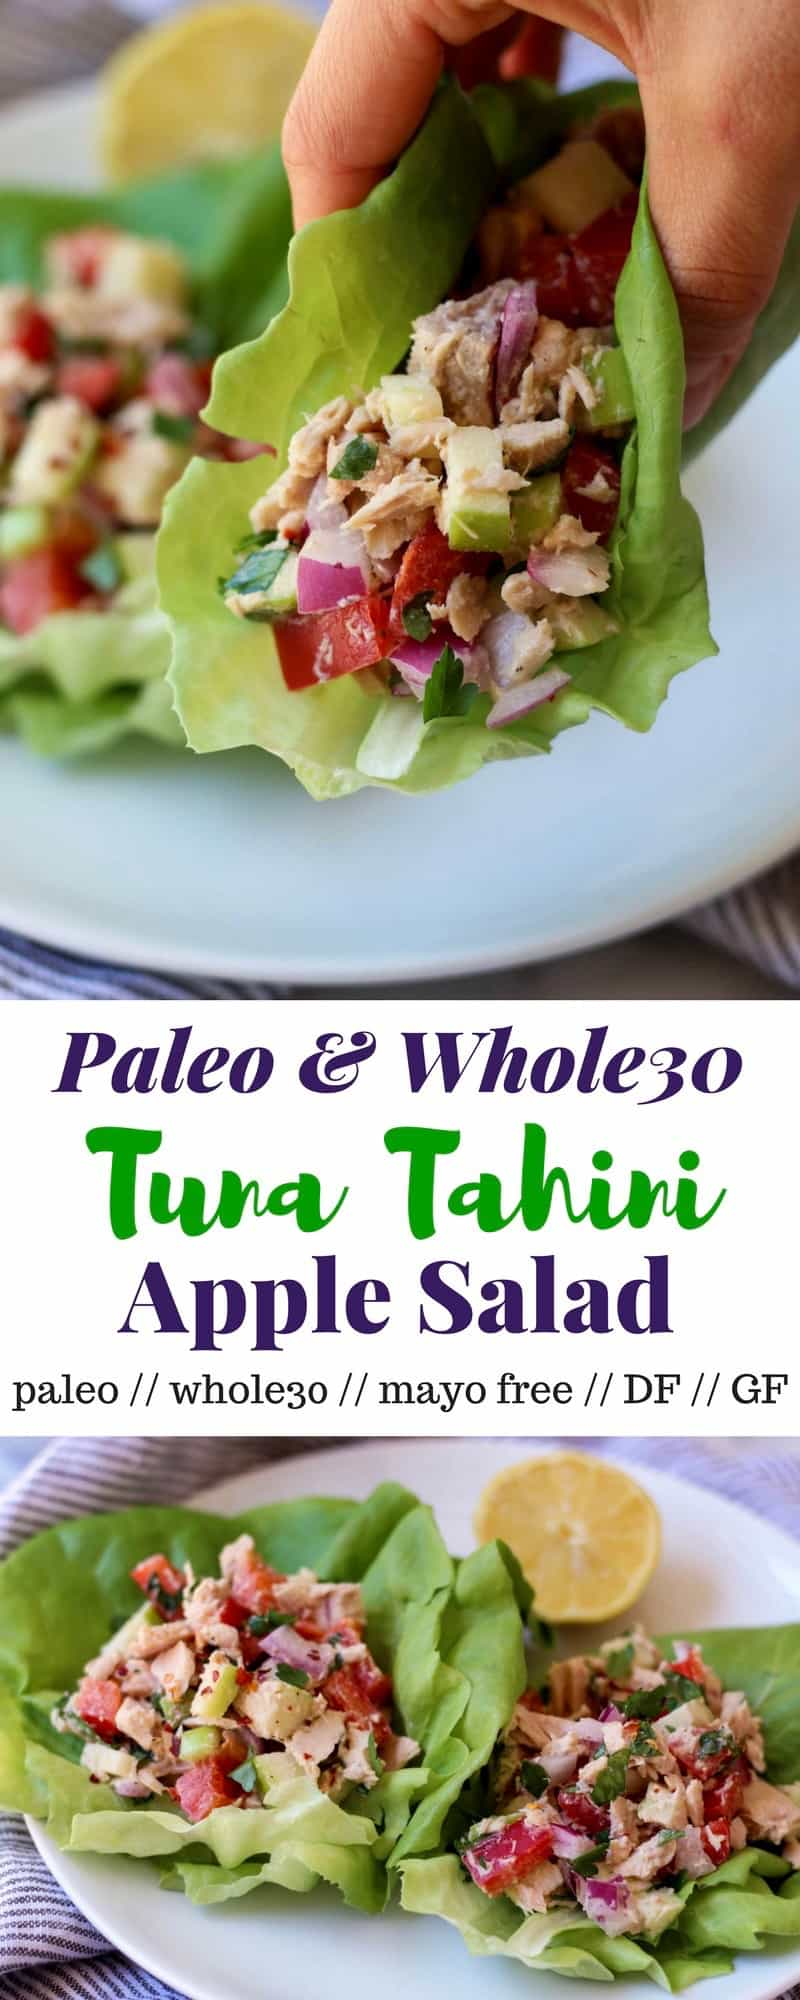 A tuna salad that is mayo free! This tuna tahini apple salad is loaded with veggies, fruit, healthy fats, and protein for an easy and on-the-go lunch made in minutes! - Eat the Gains